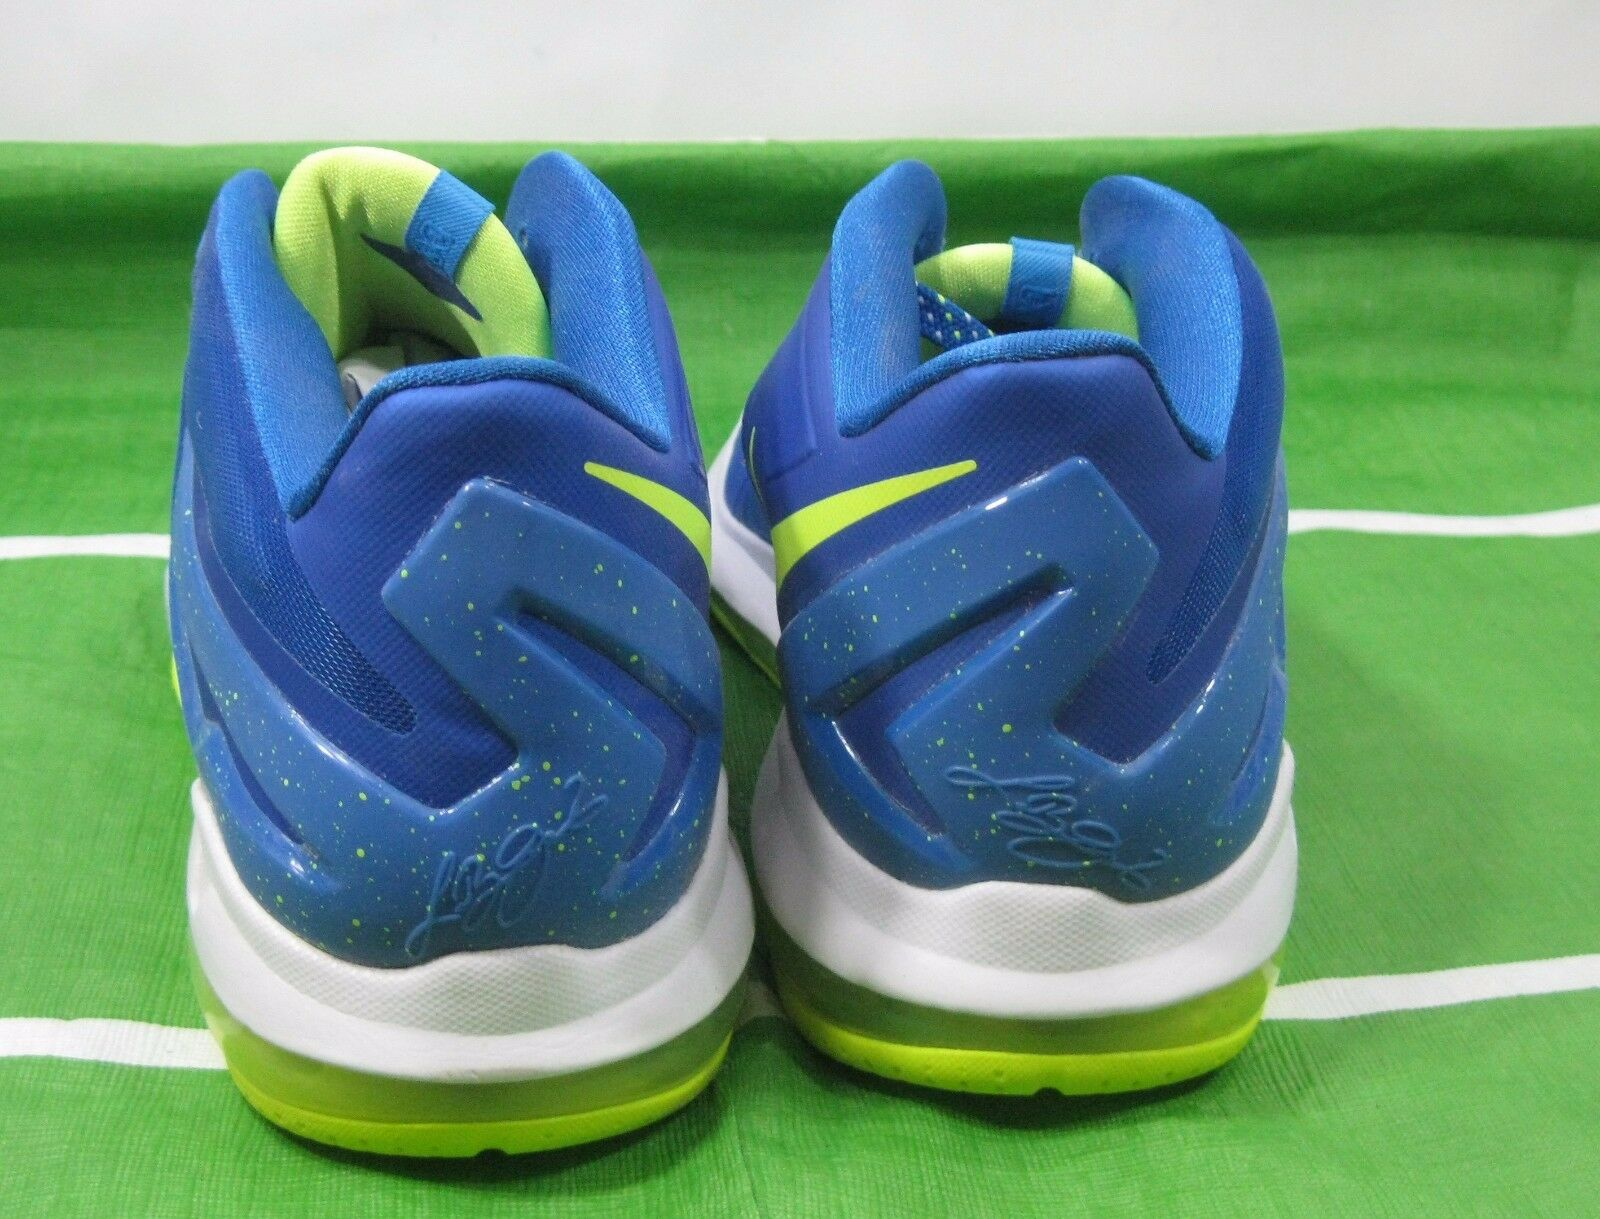 e83f0cb9614 Nike Air Max Lebron XL 11 Low Sprite HYPER Cobalt Volt Blue 642849 471 for  sale online